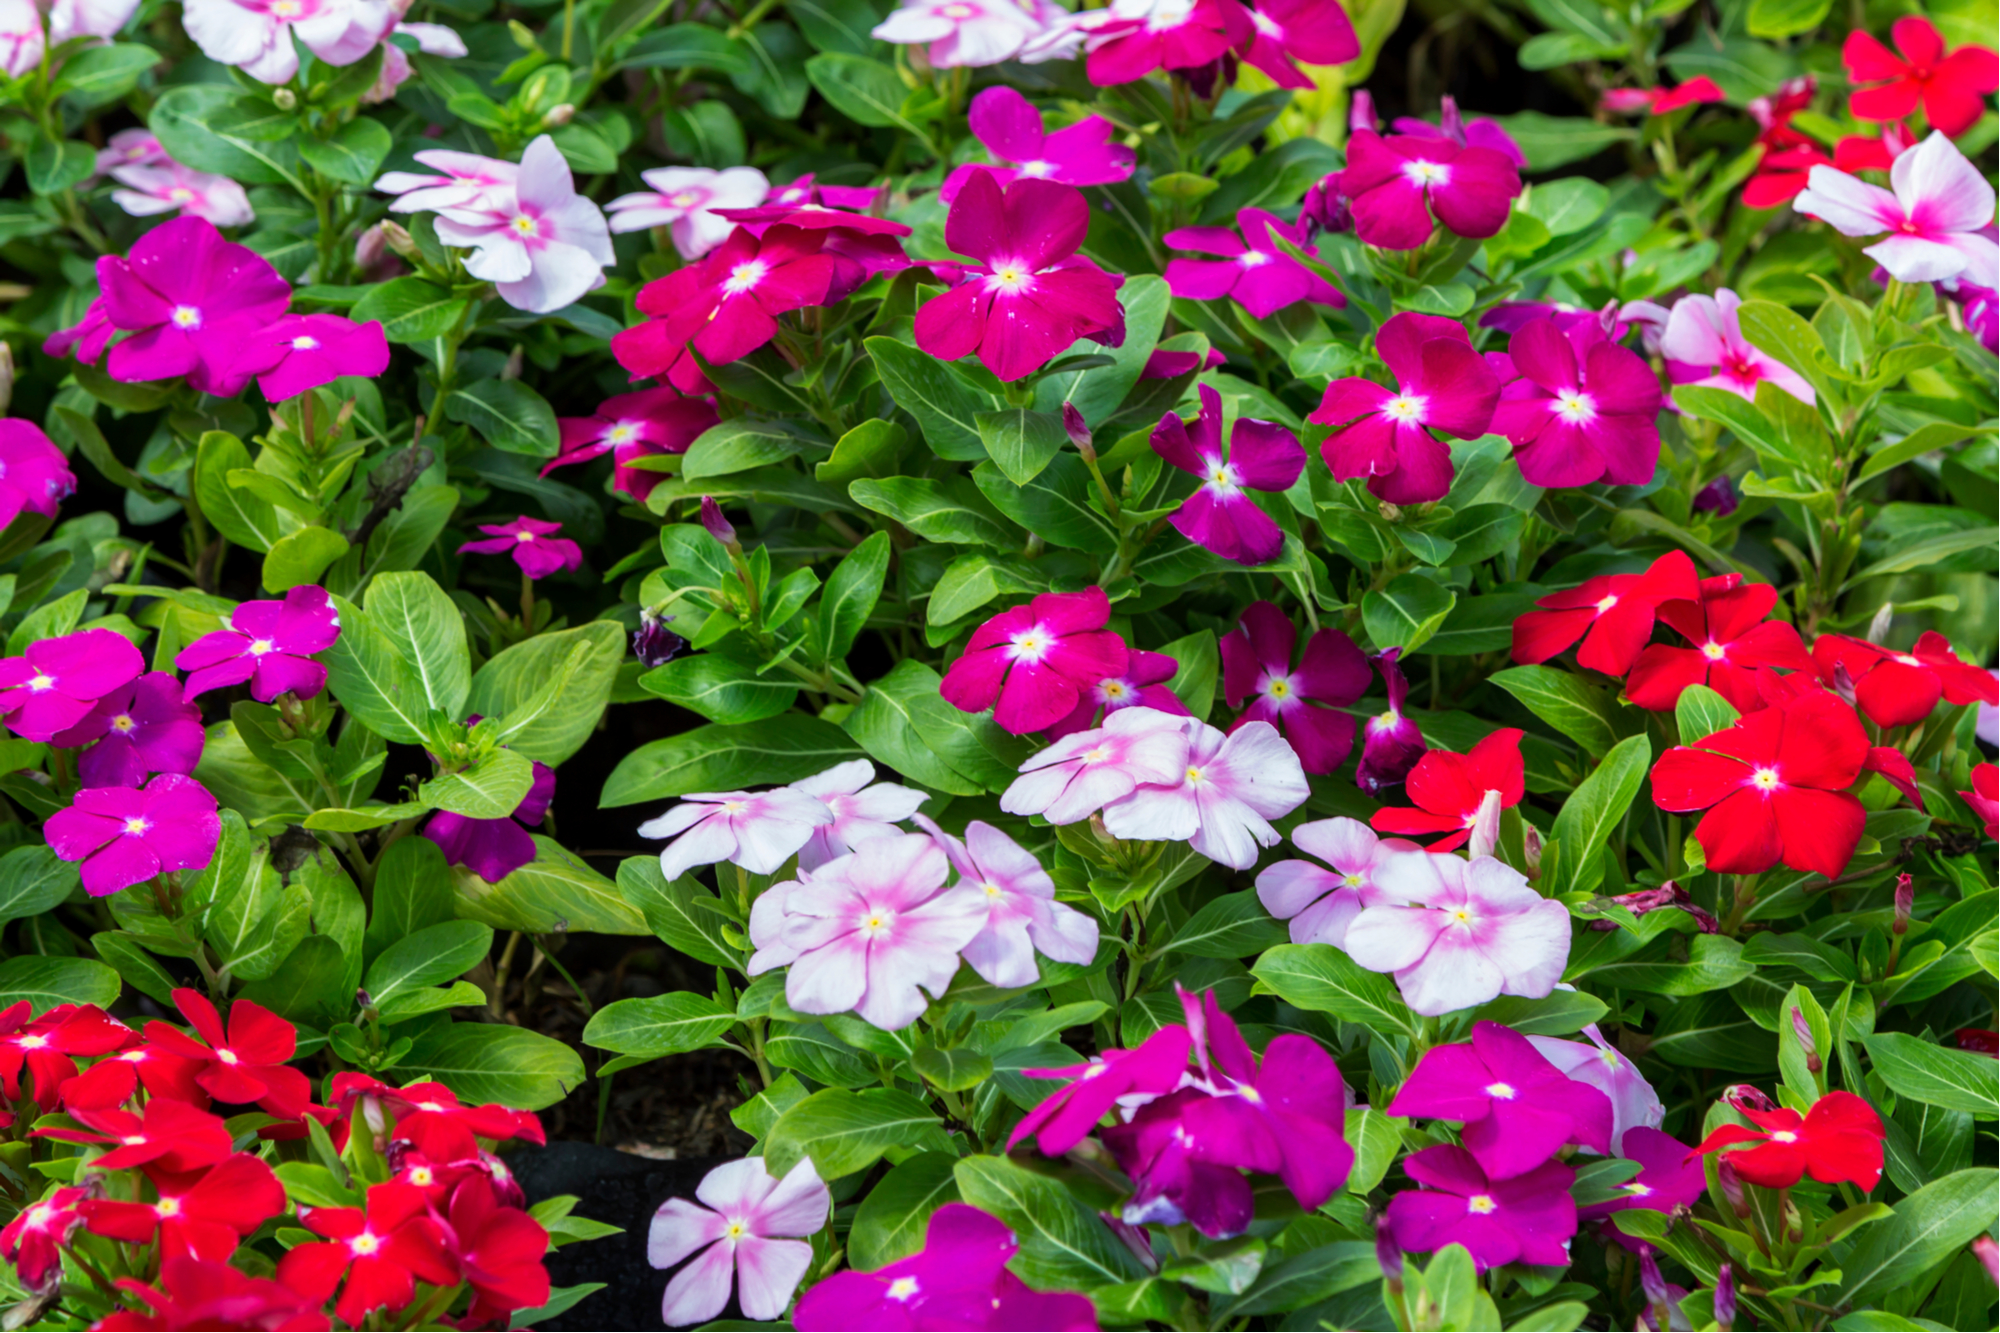 periwinkle | plant guide | plants | flowers | groundcover | groundcover flowers | myrtle herb